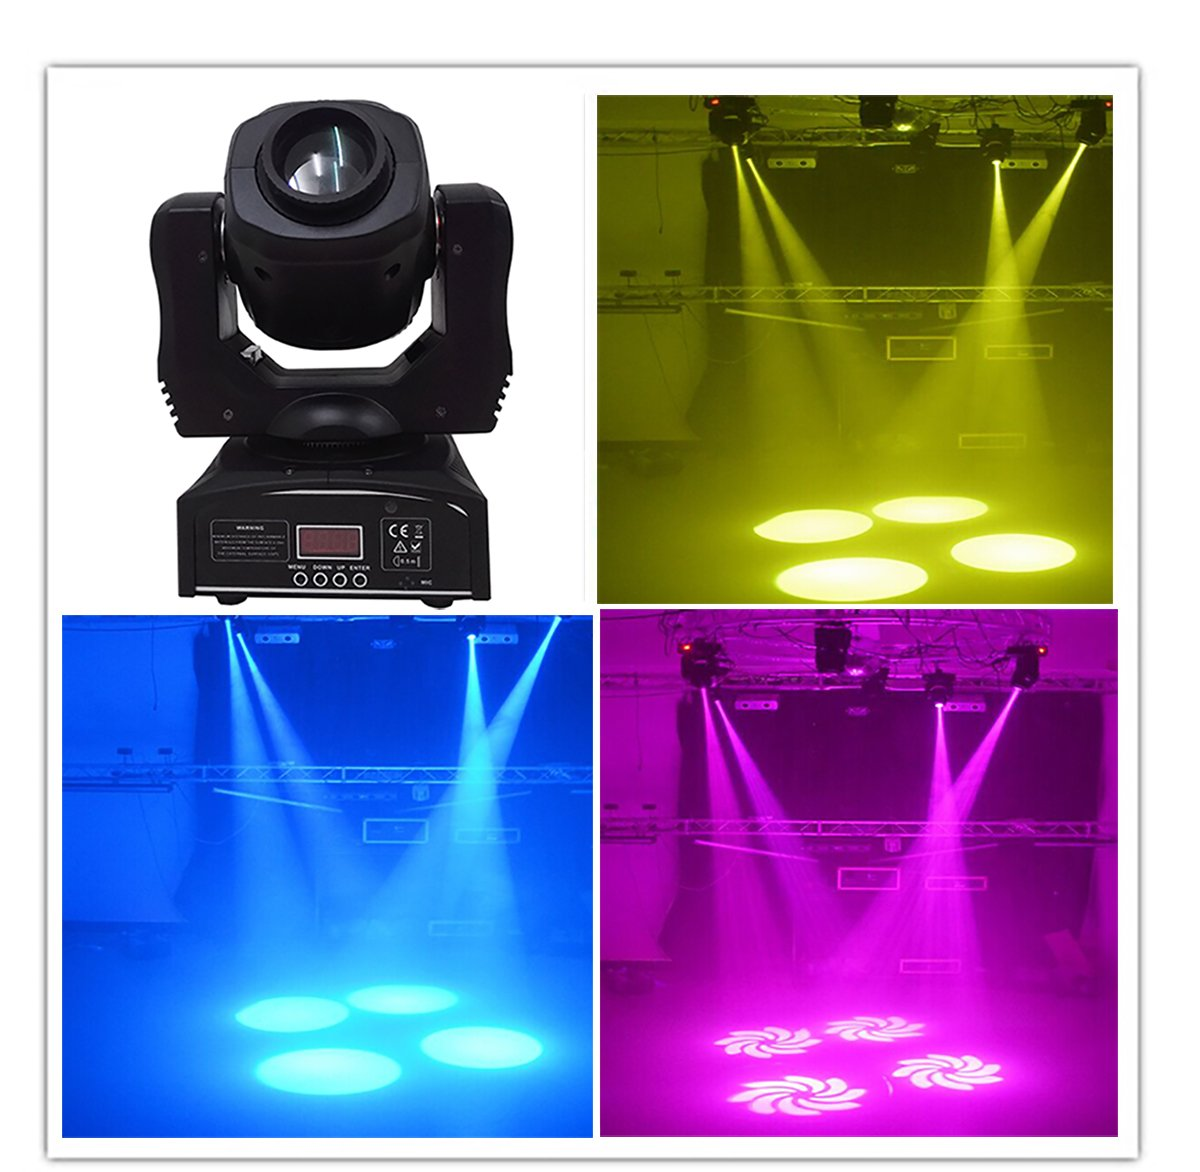 Wonsung 60w Led Gobo Moving Head Lighting Spot Par Light Circuit Board Buy Boardled Dj Set Christmas Lights Projector For Bar Party Event Musical Instruments